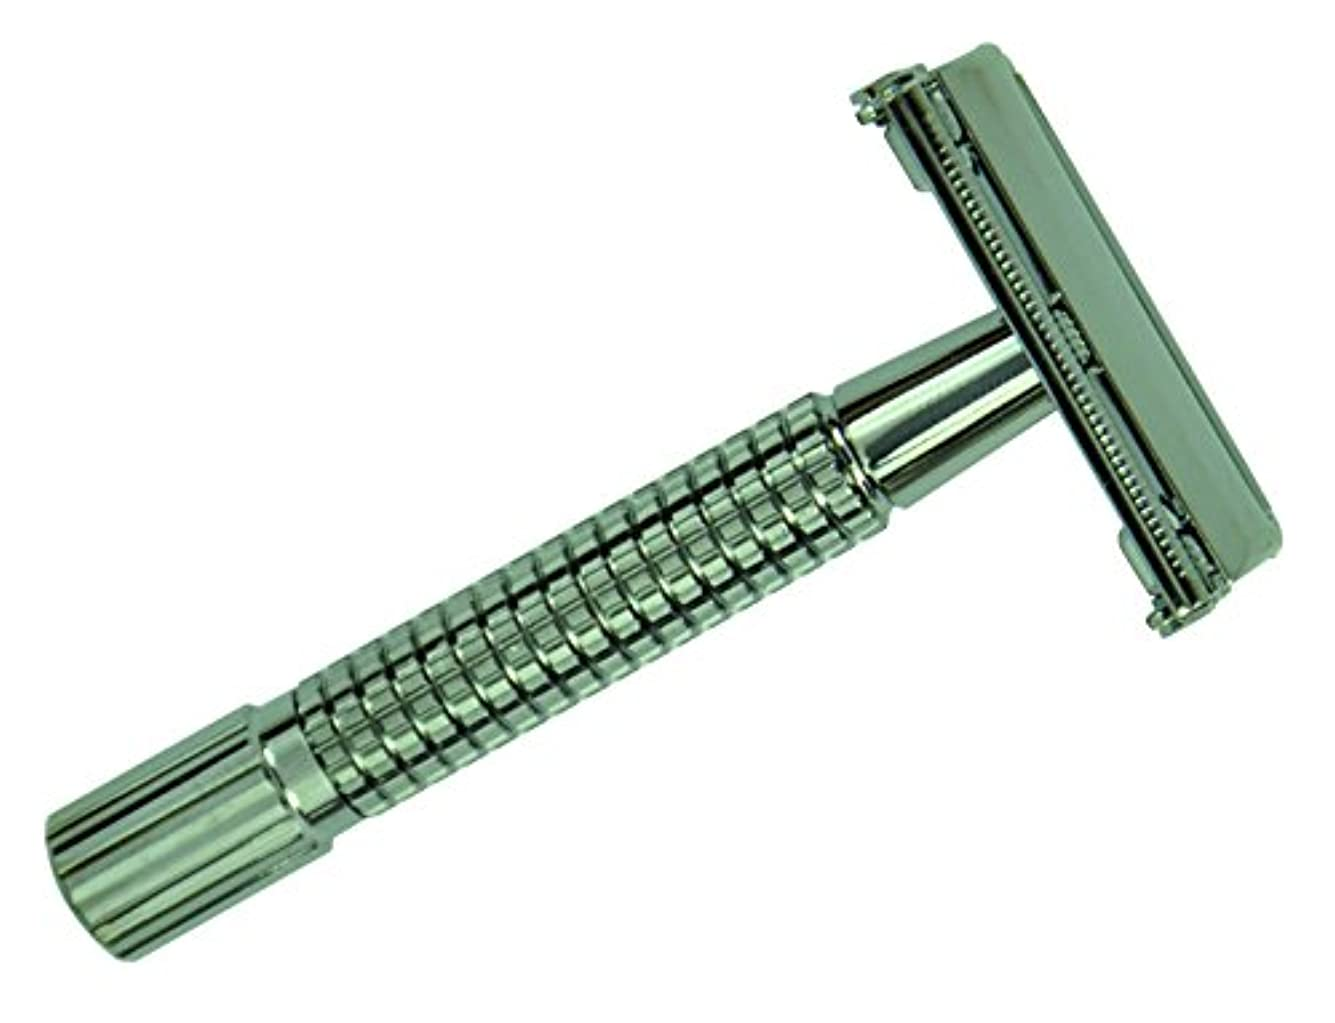 ヒールちなみに物語GOLDDACHS double blade razor, titanium, ribbed grip,